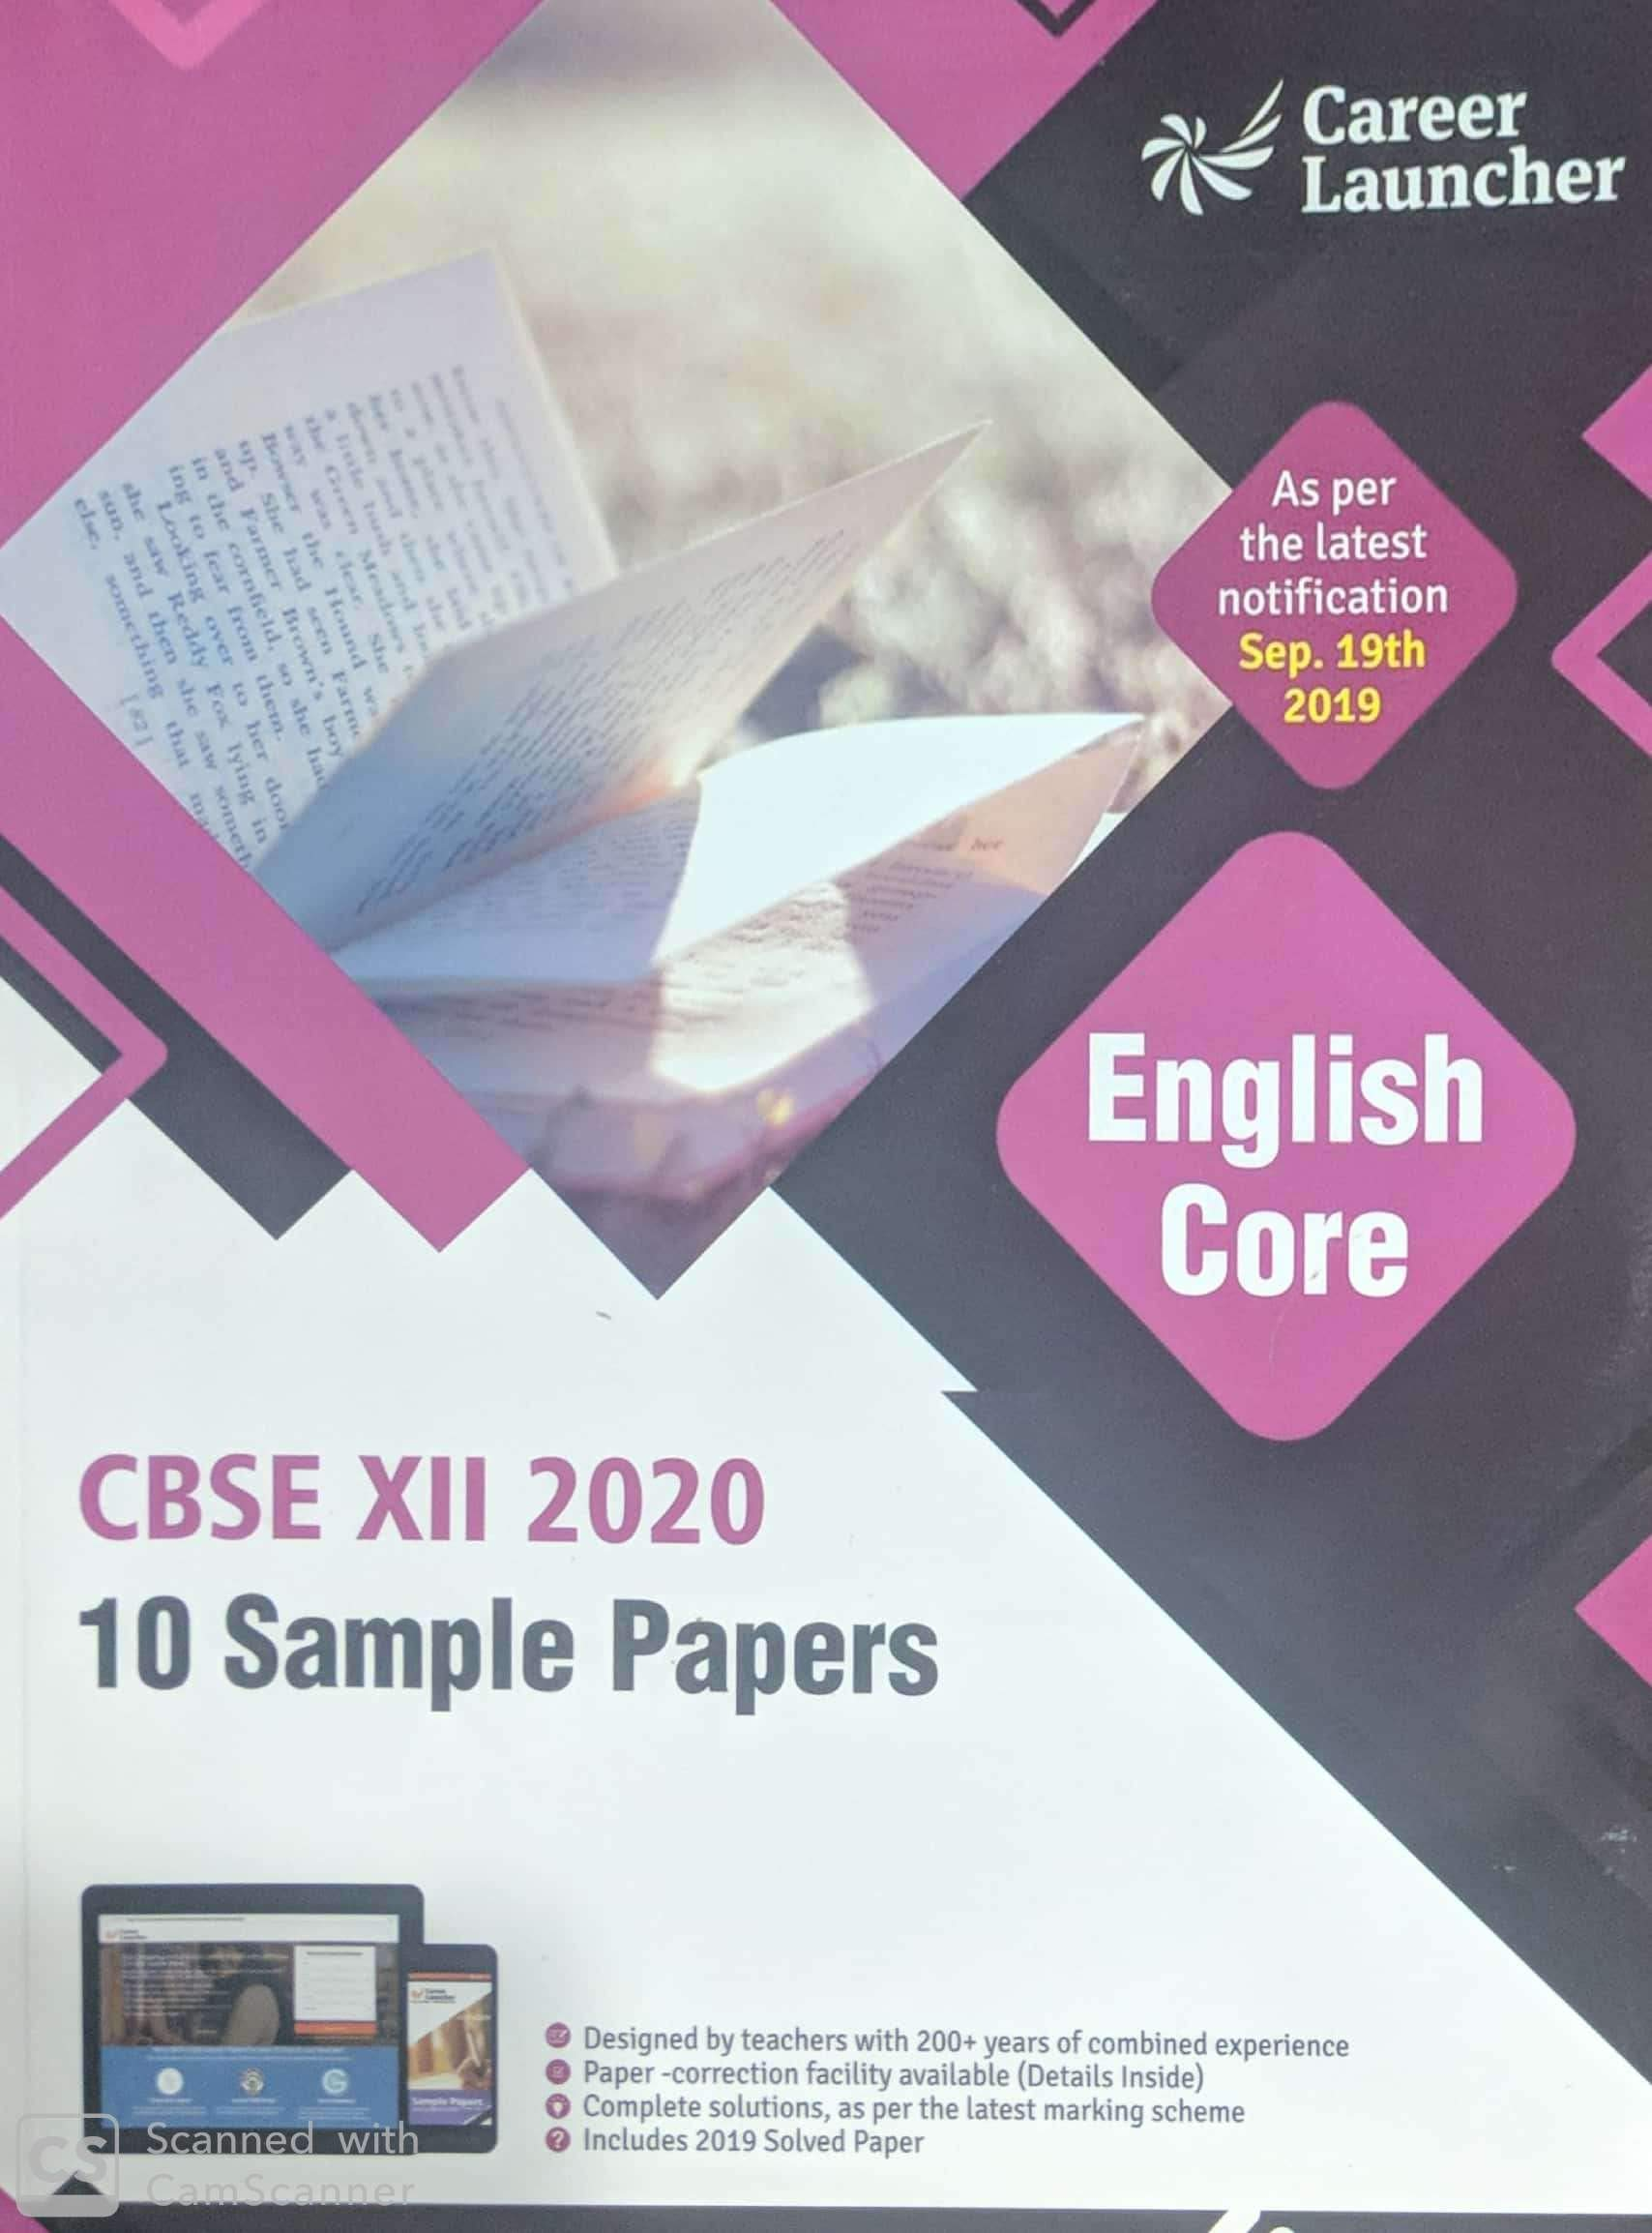 CBSE 2020 : Class XII - 10 Sample Papers - English Core Paperback – 3 October 2019